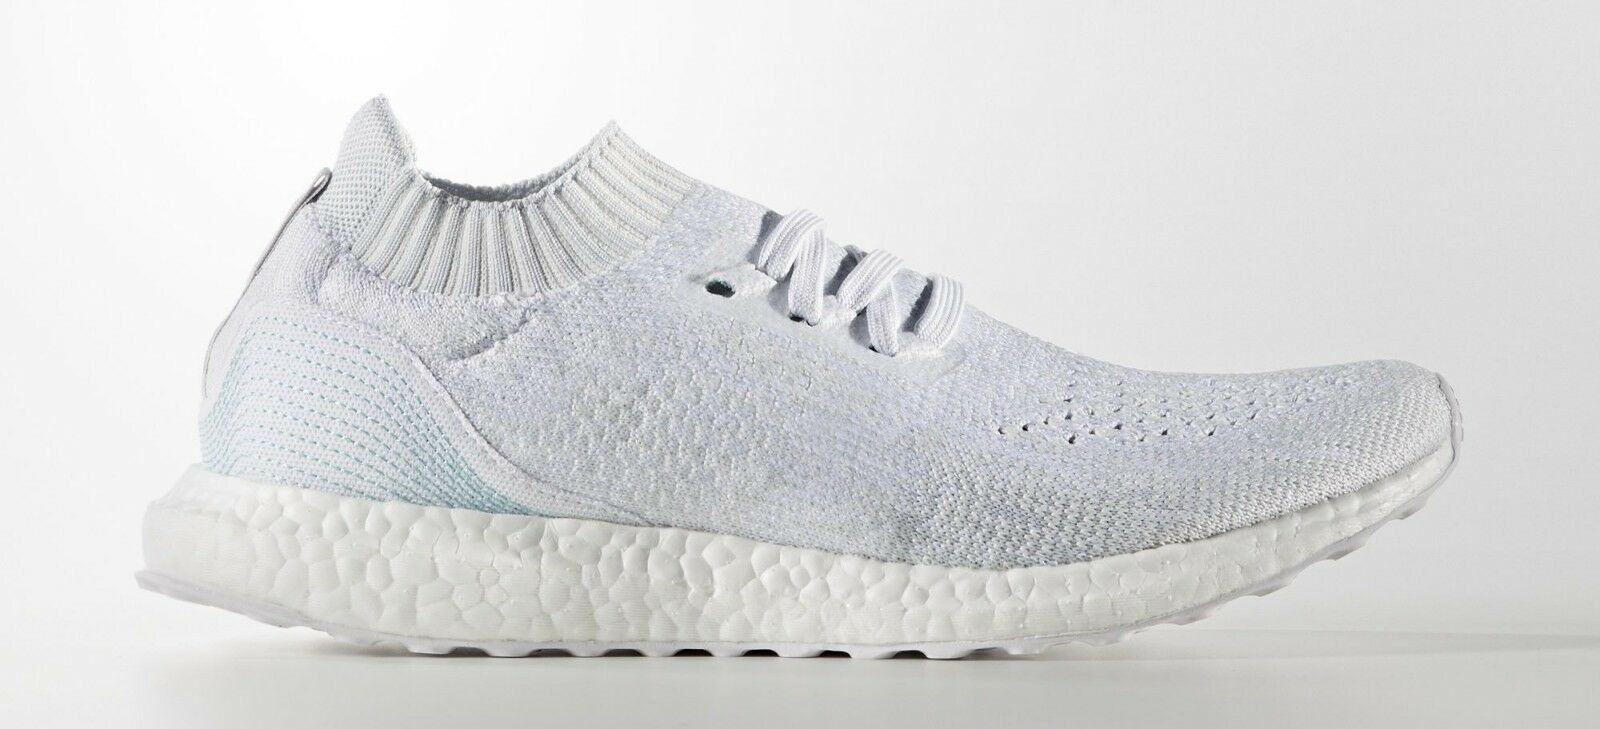 ADIDAS ULTRA Boost parlay recycled Uncaged Uncaged Uncaged og NMD EQT Cream iniki Air Max Yeezy 9da365